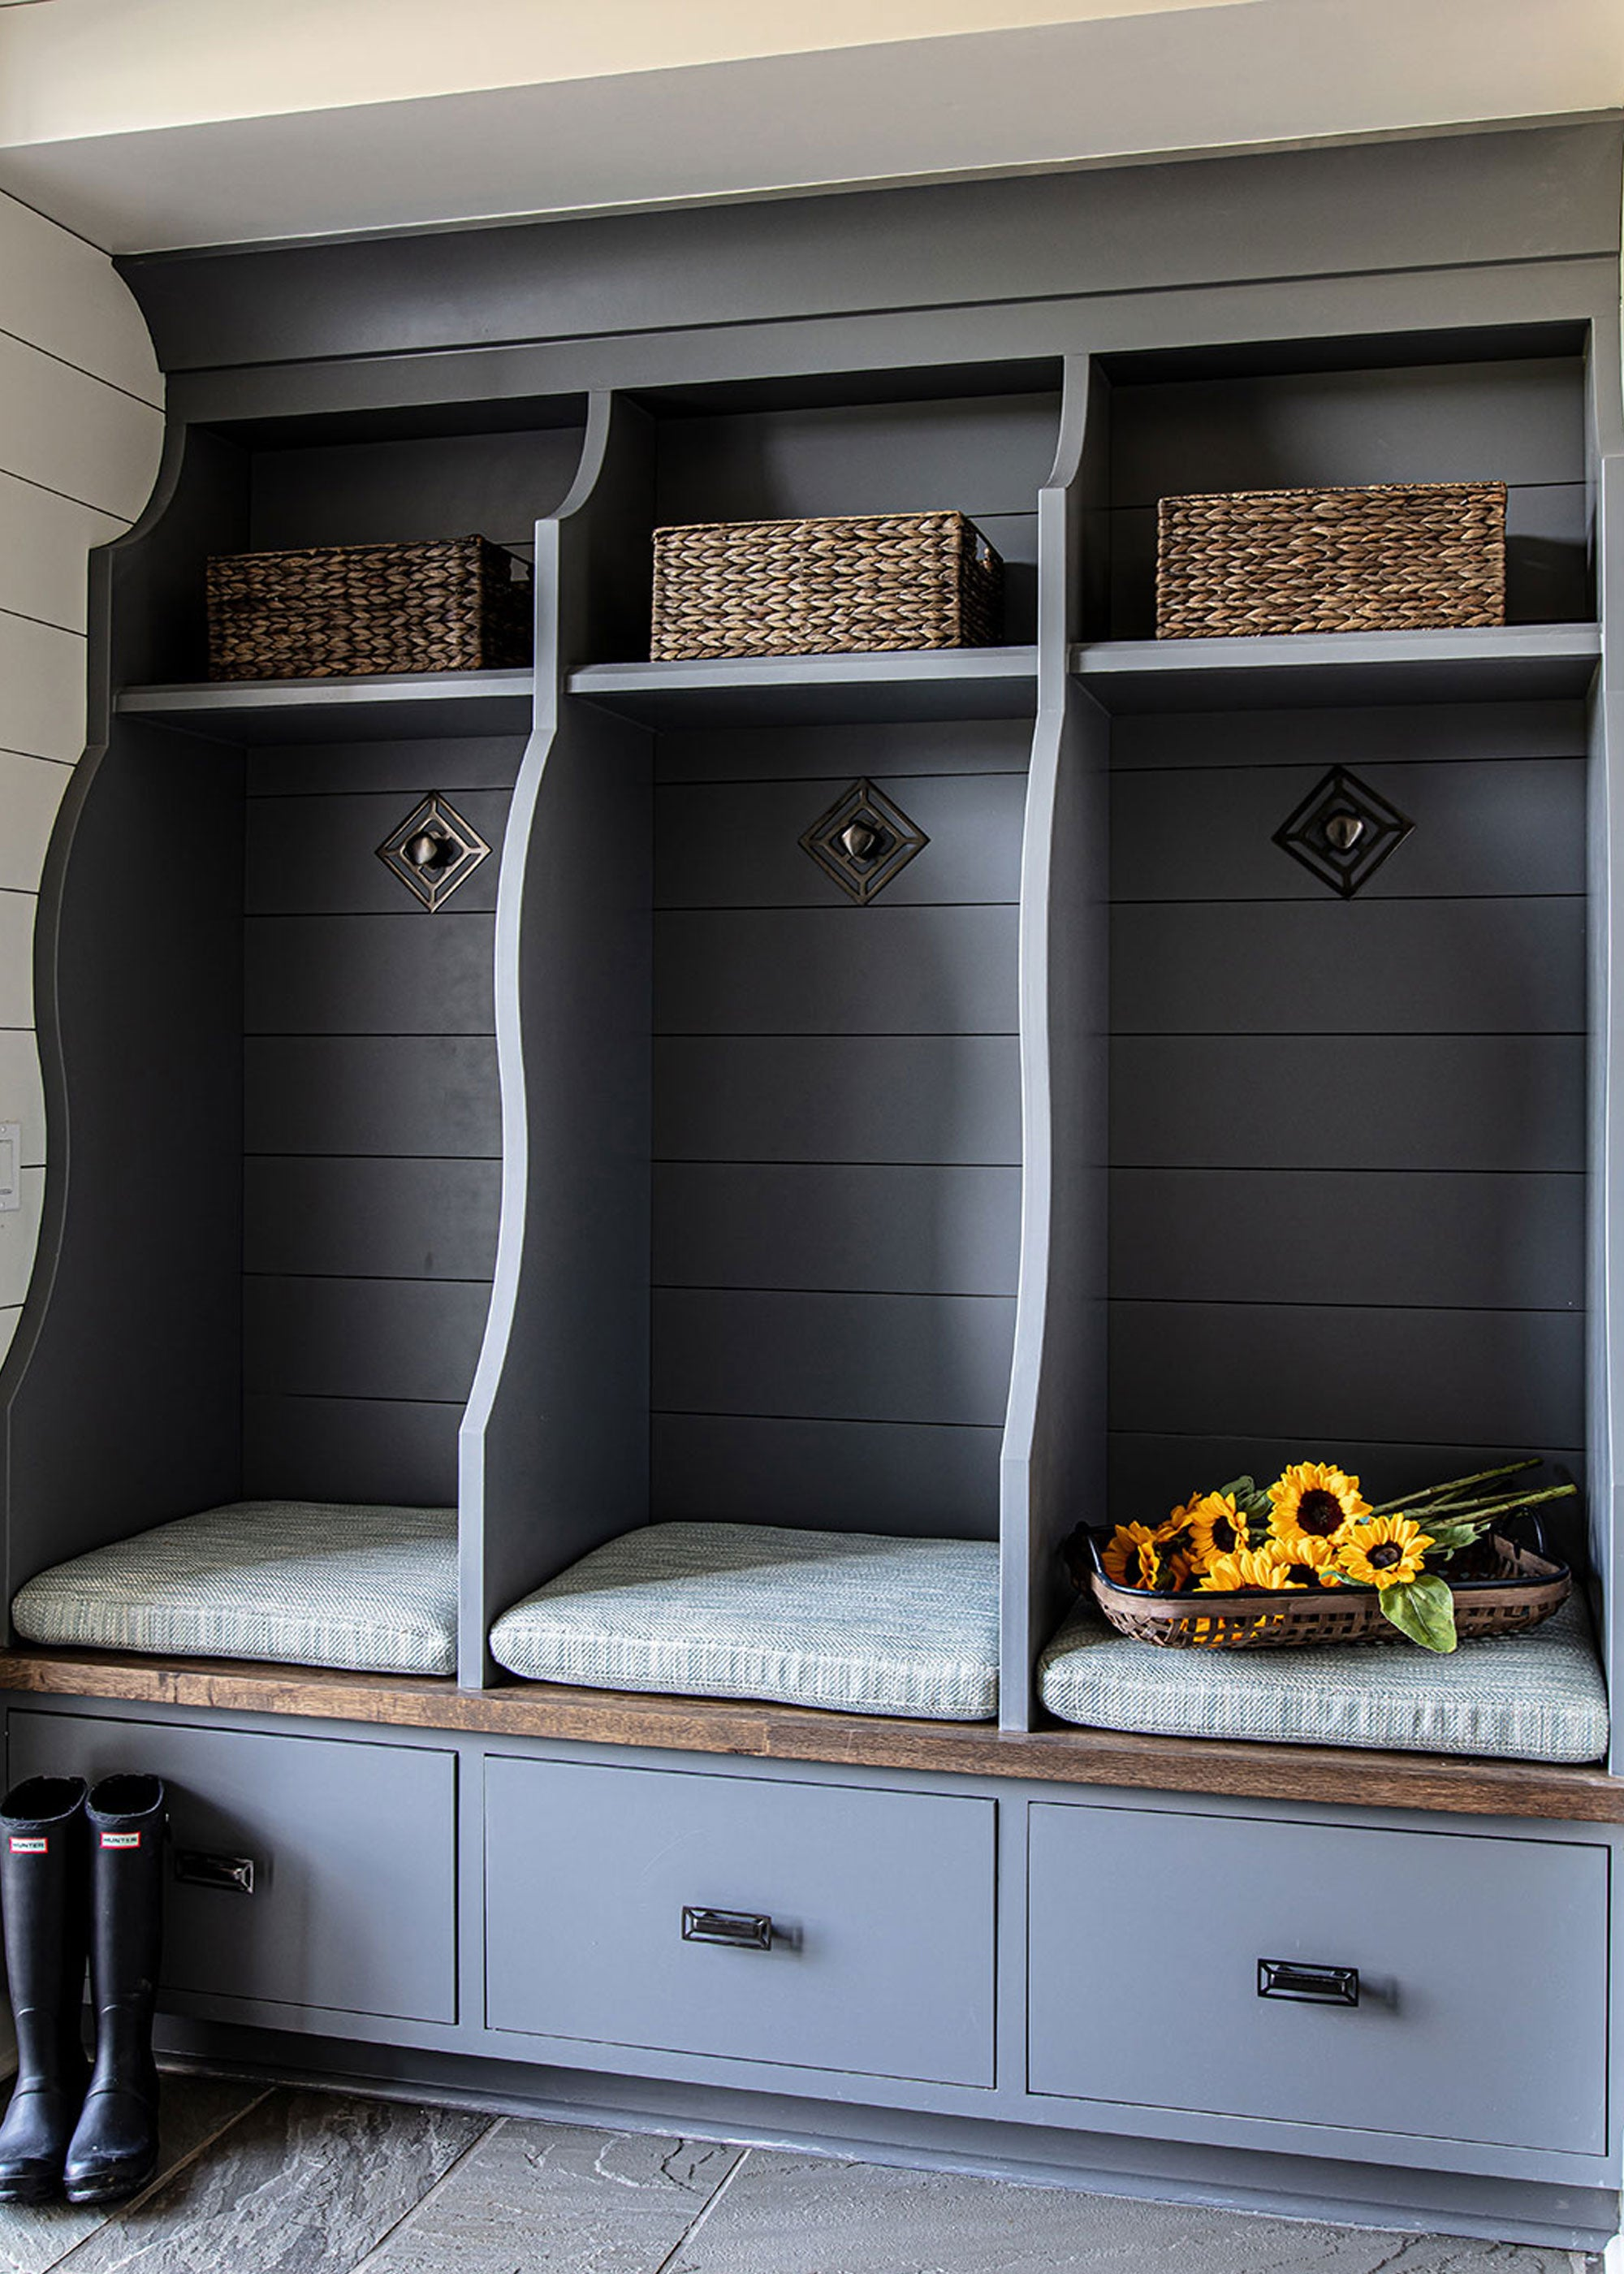 Mudroom Design with Benson Backplate & Mccoy Rectangle Pull in Brass